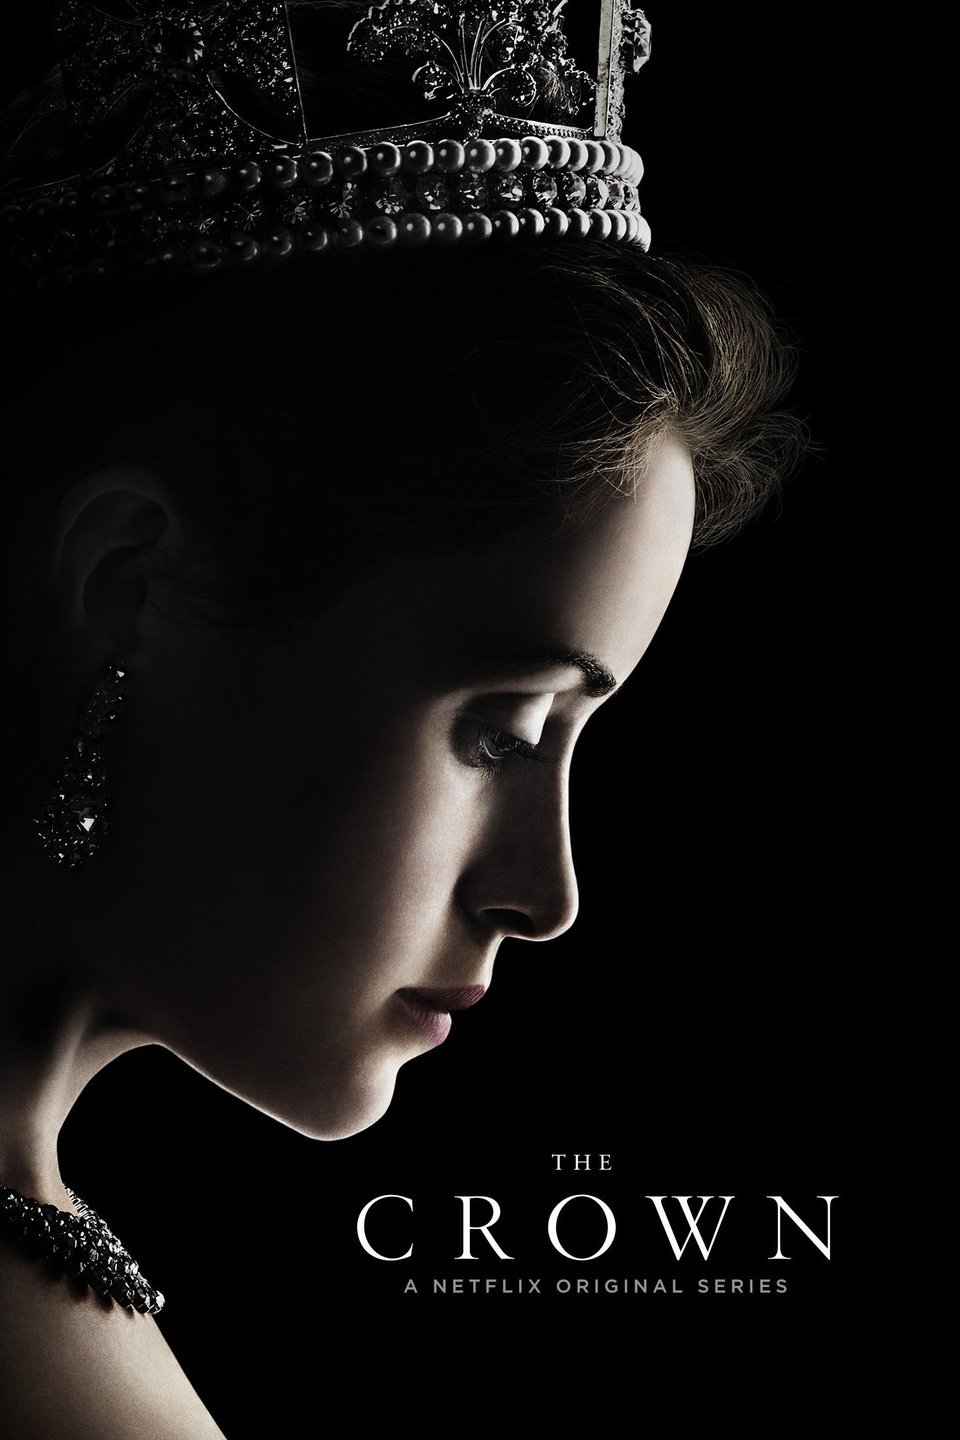 The Crown Review eps 1-4